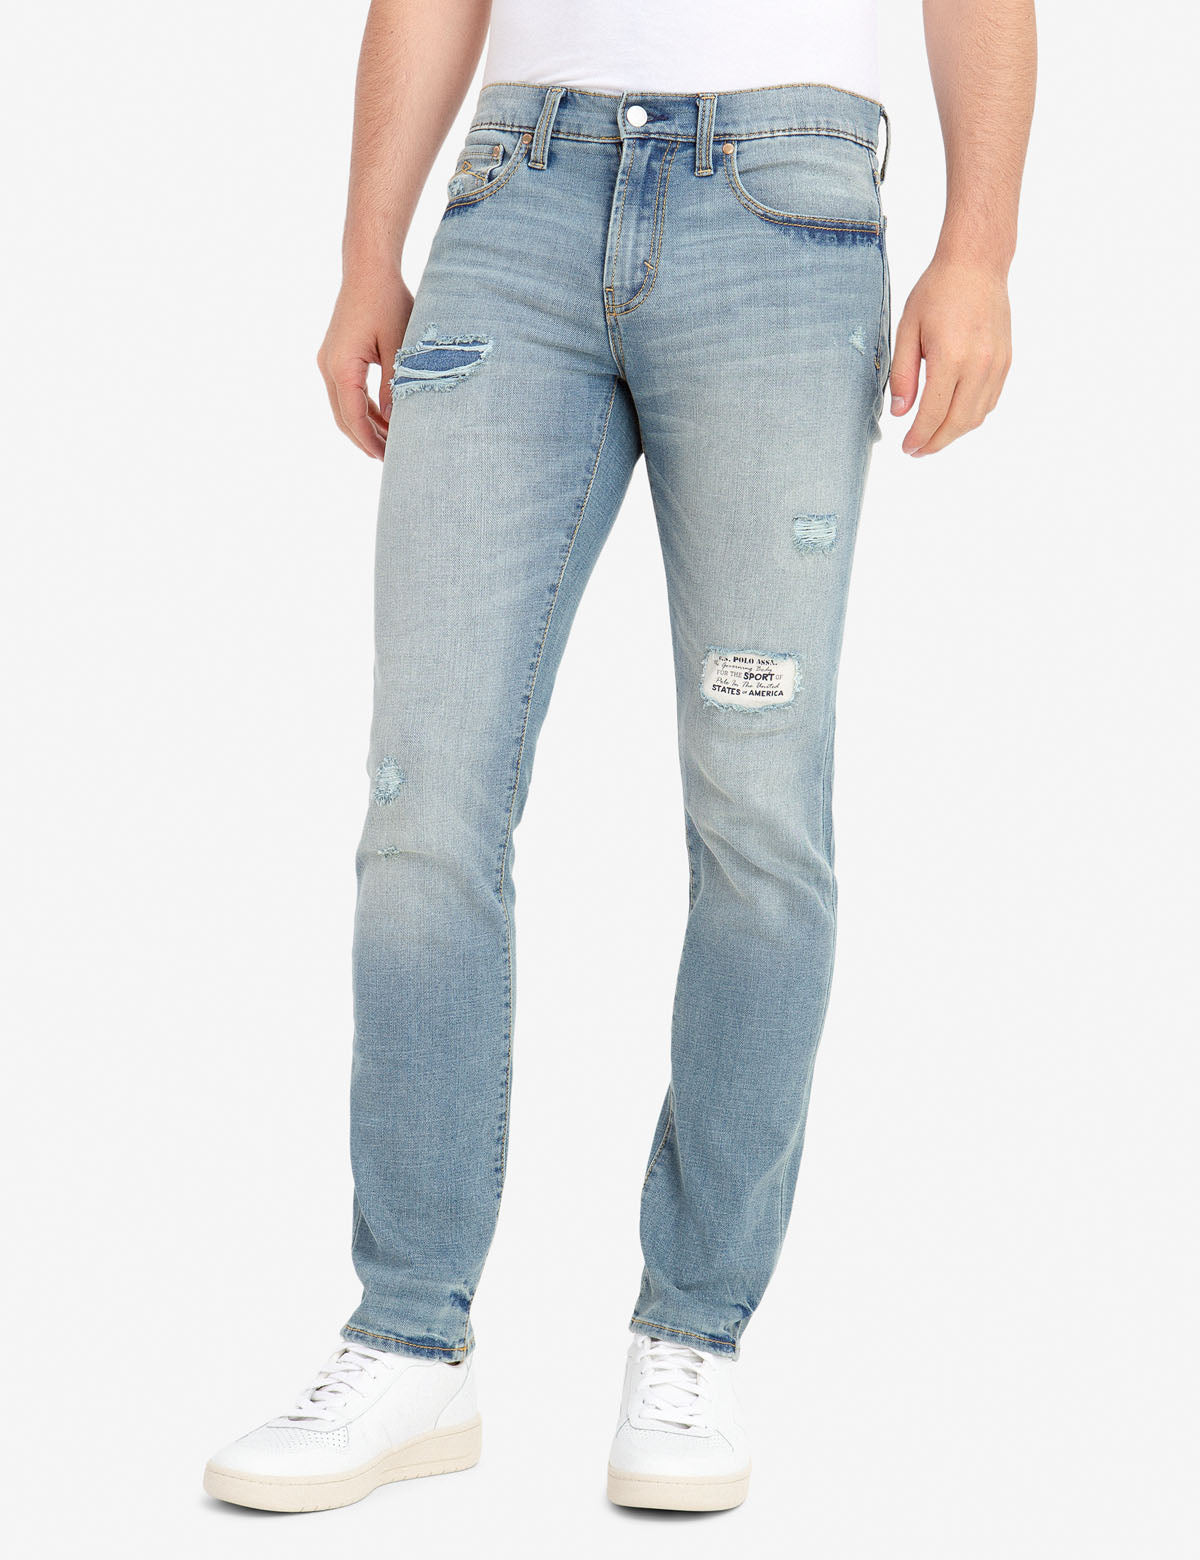 REPREVE® SKINNY FIT DISTRESSED JEANS WITH PATCH REPAIR